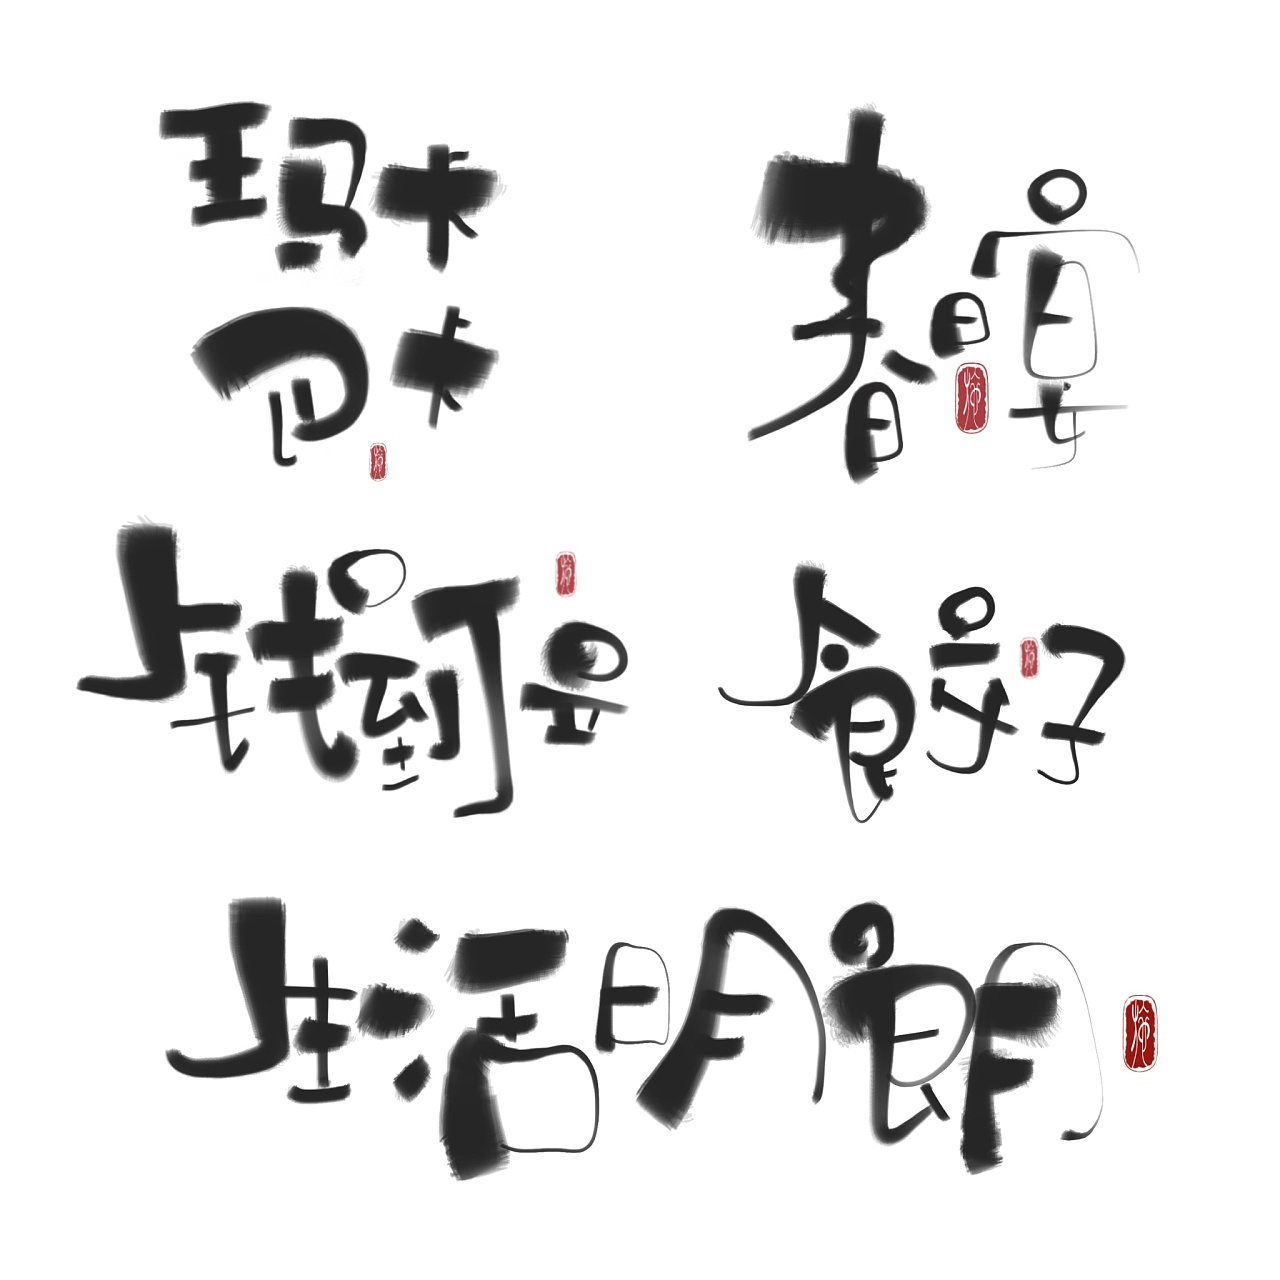 Chinese Creative Font Design-Black is also the simplest color